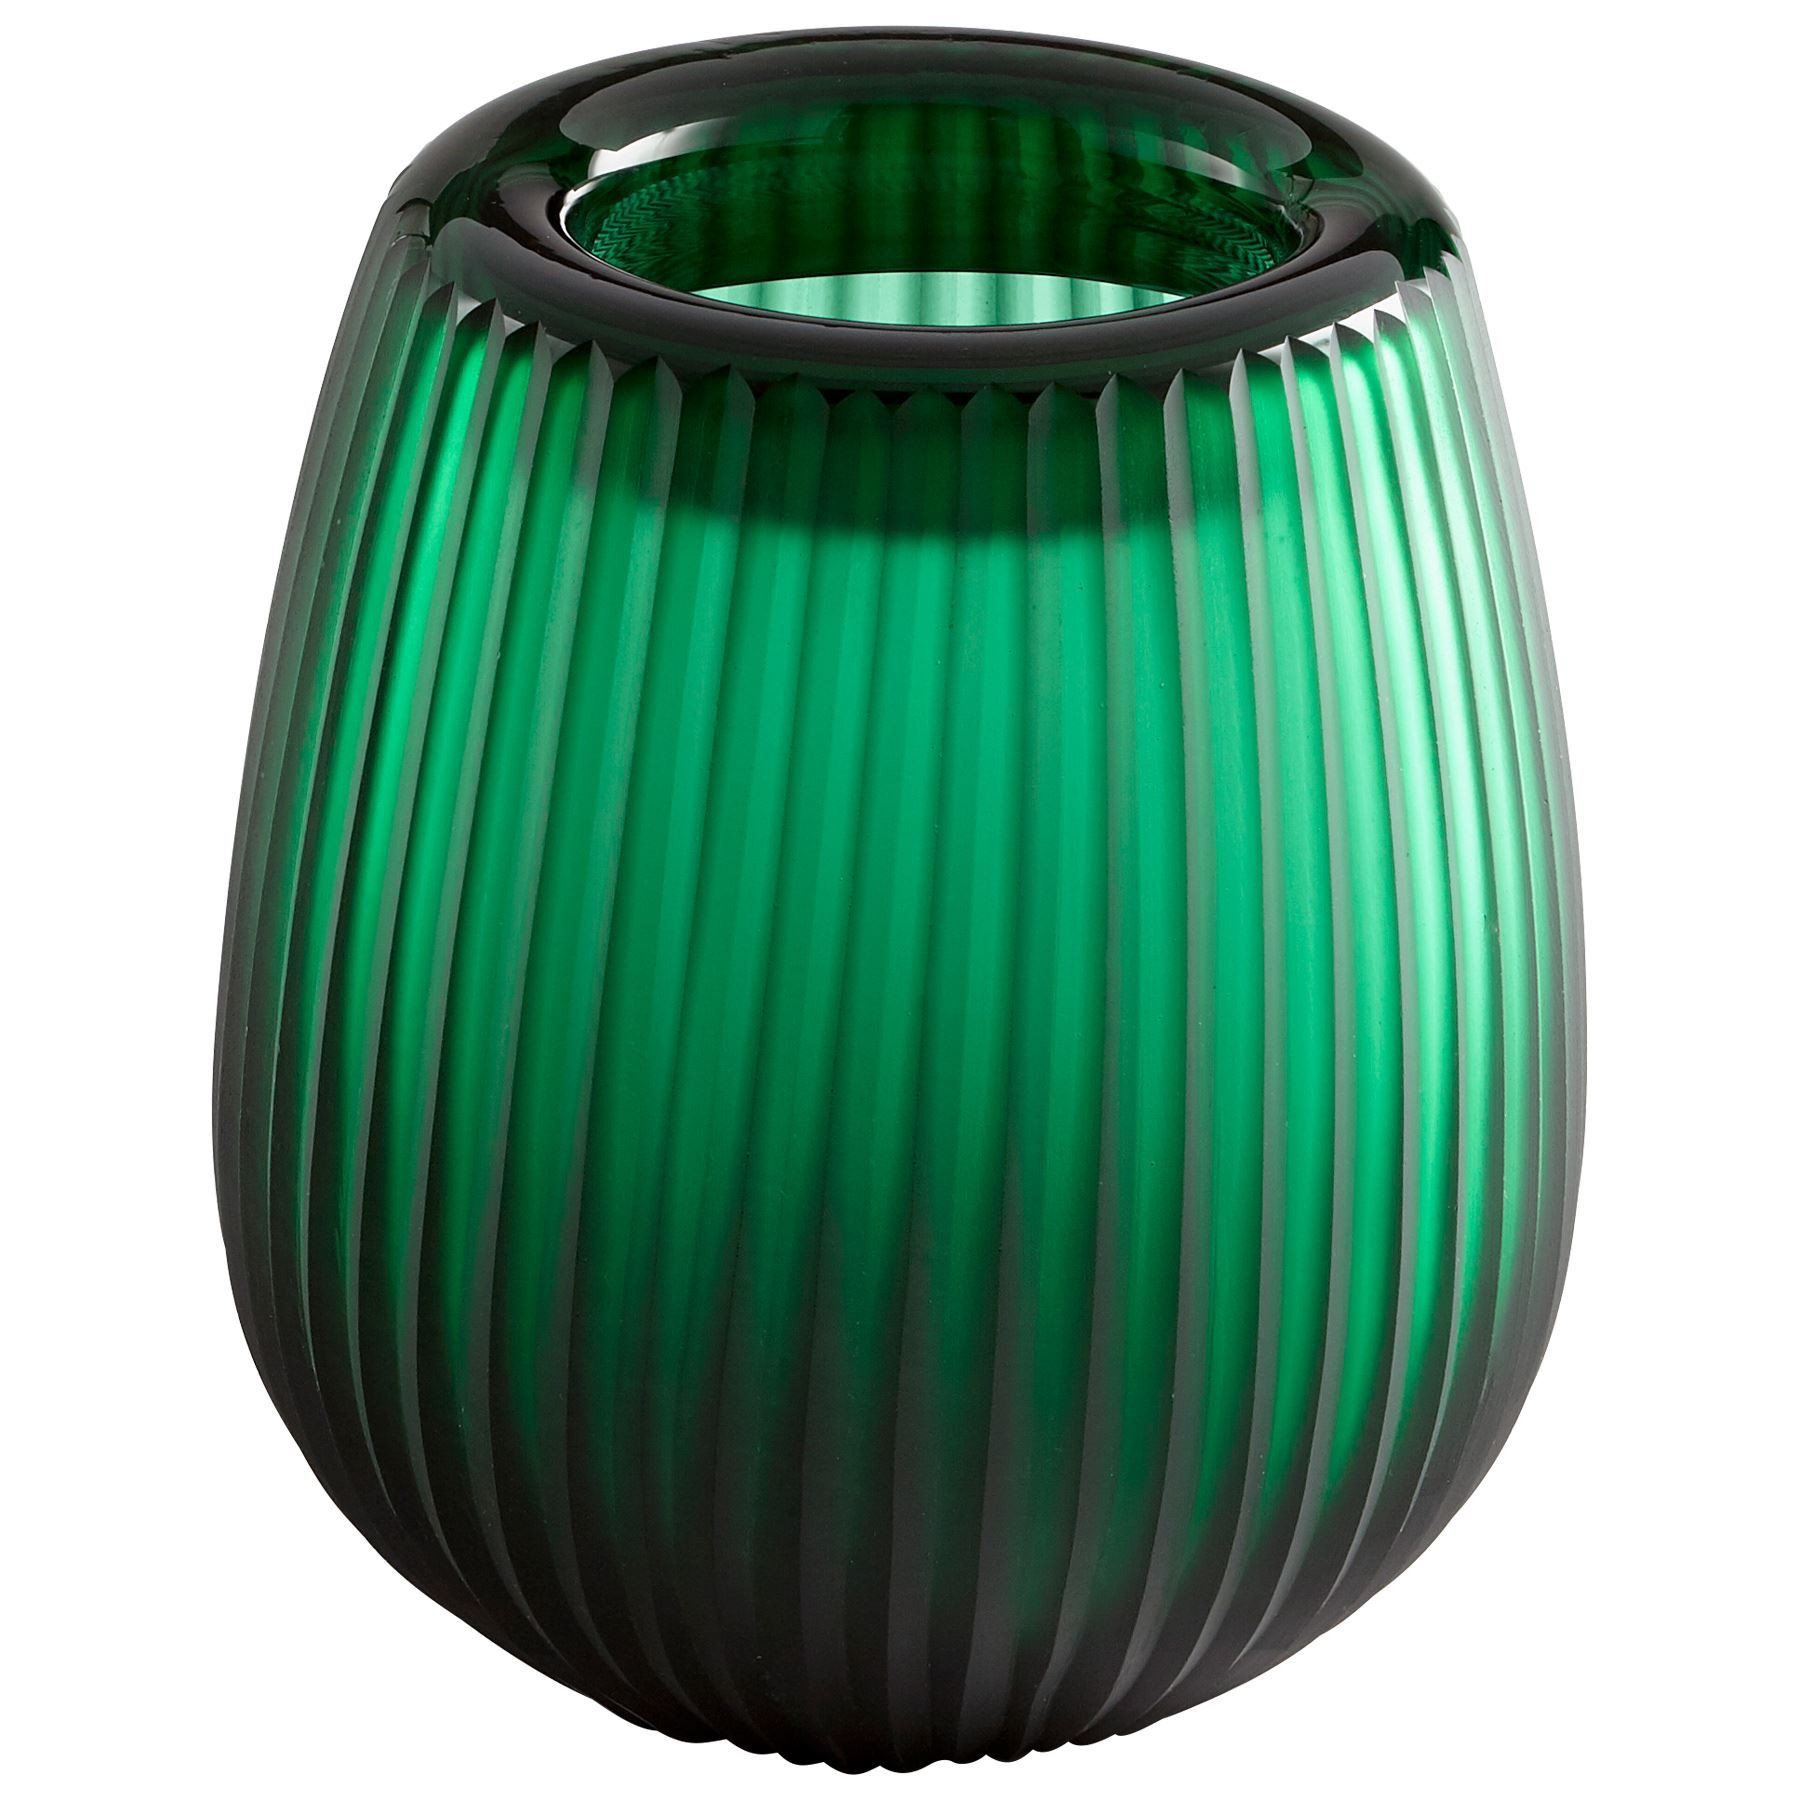 cyan design vases of home accessories pietro vase small 5x10in in glowing noir small emerald green art glass vase by cyan design